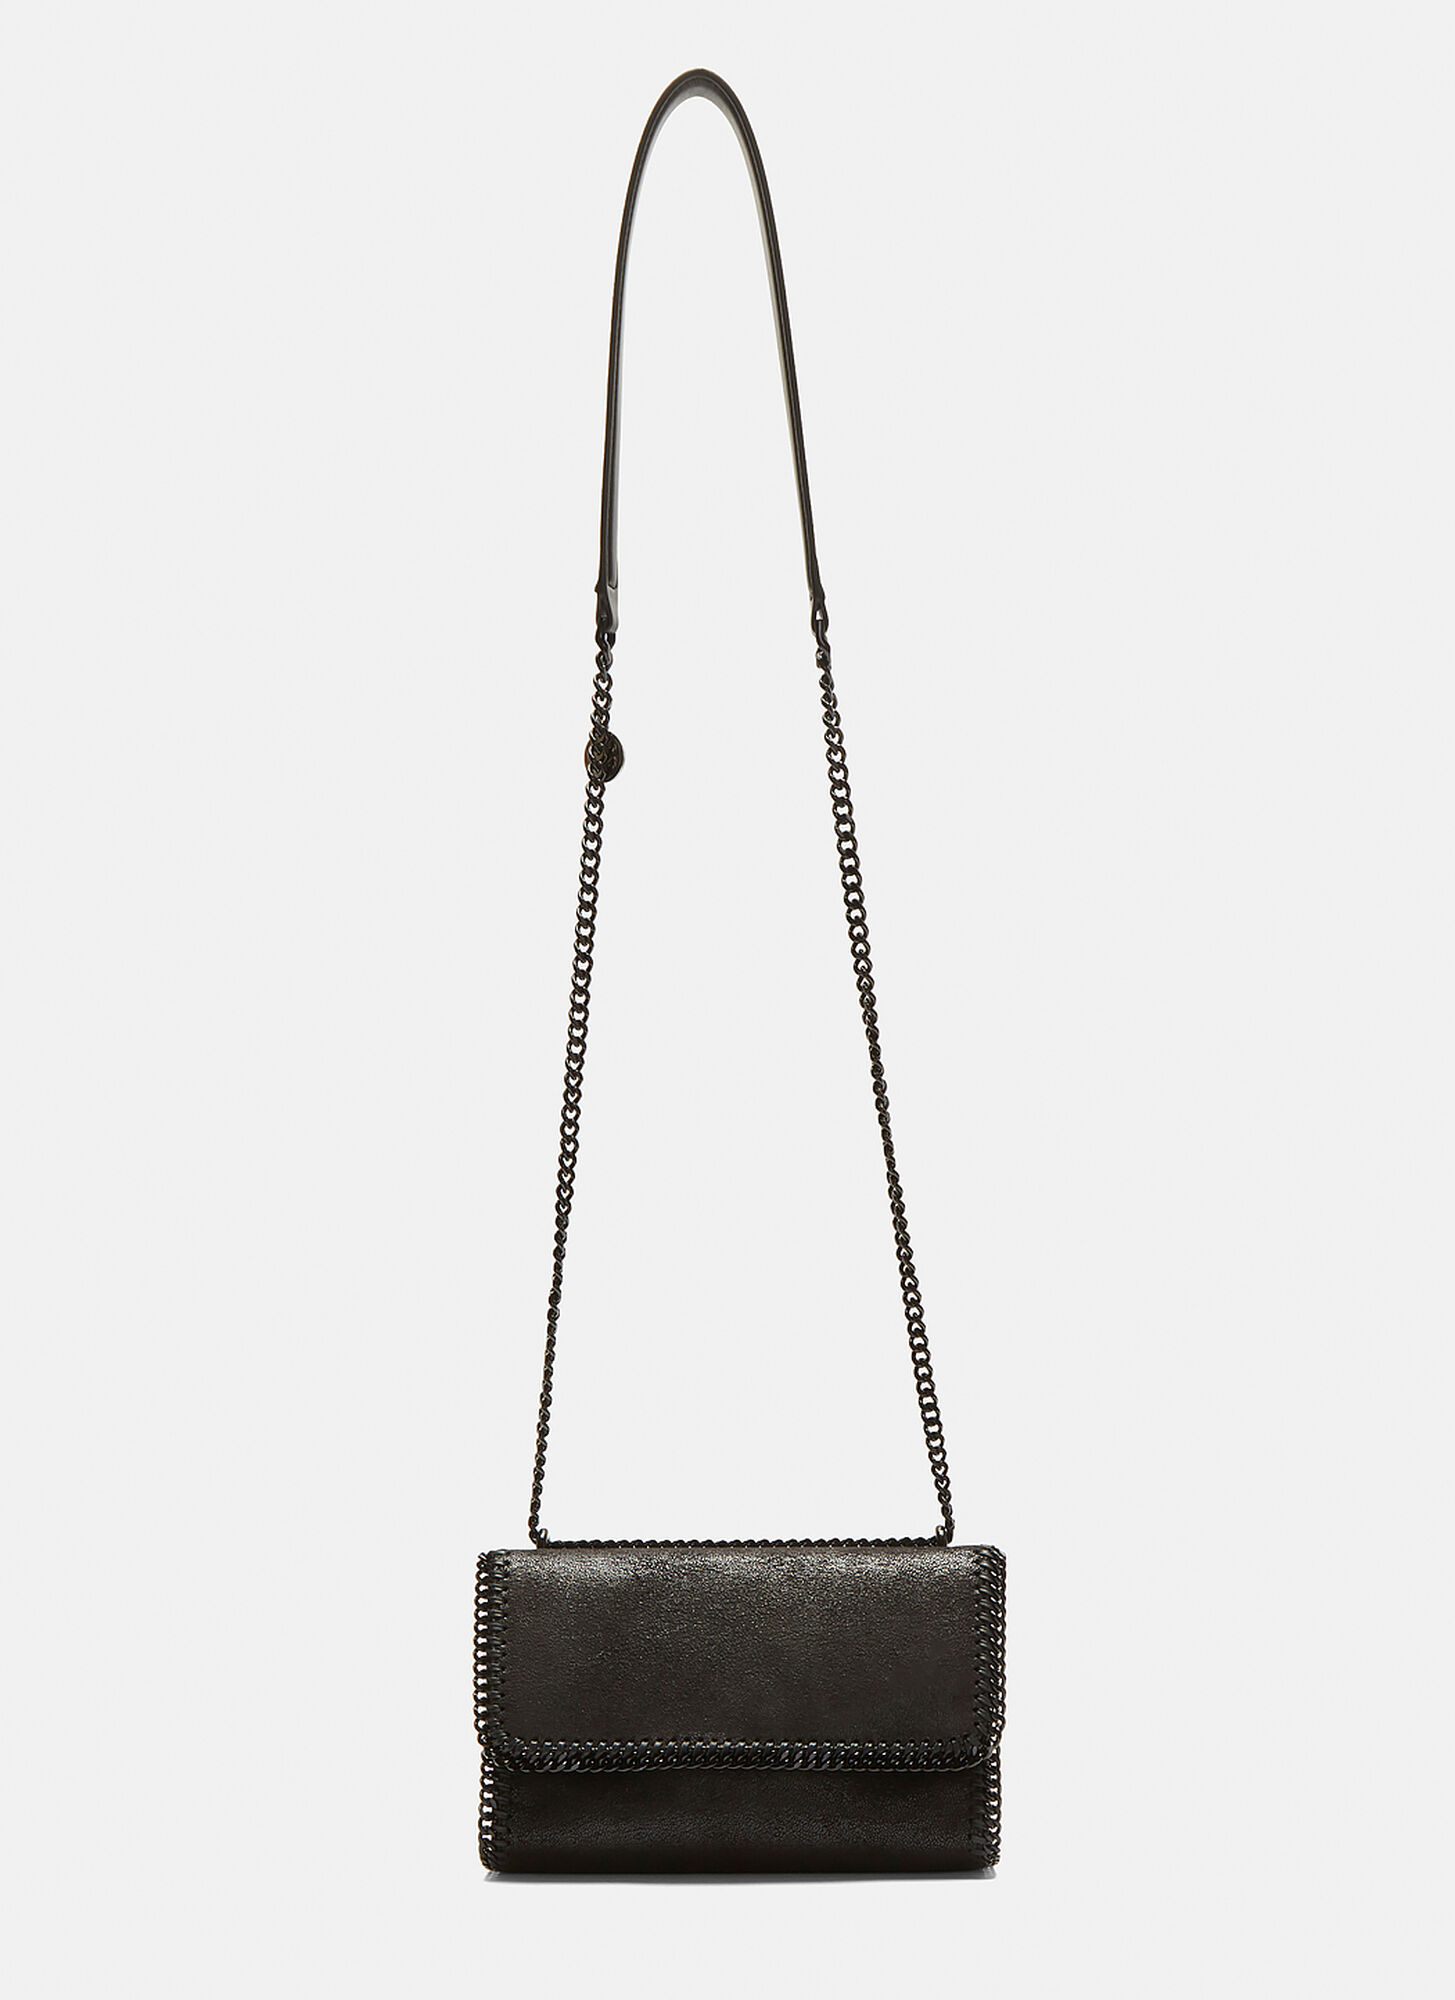 Stella McCartney Shaggy Deer Falabella Chain Shoulder Bag in Black